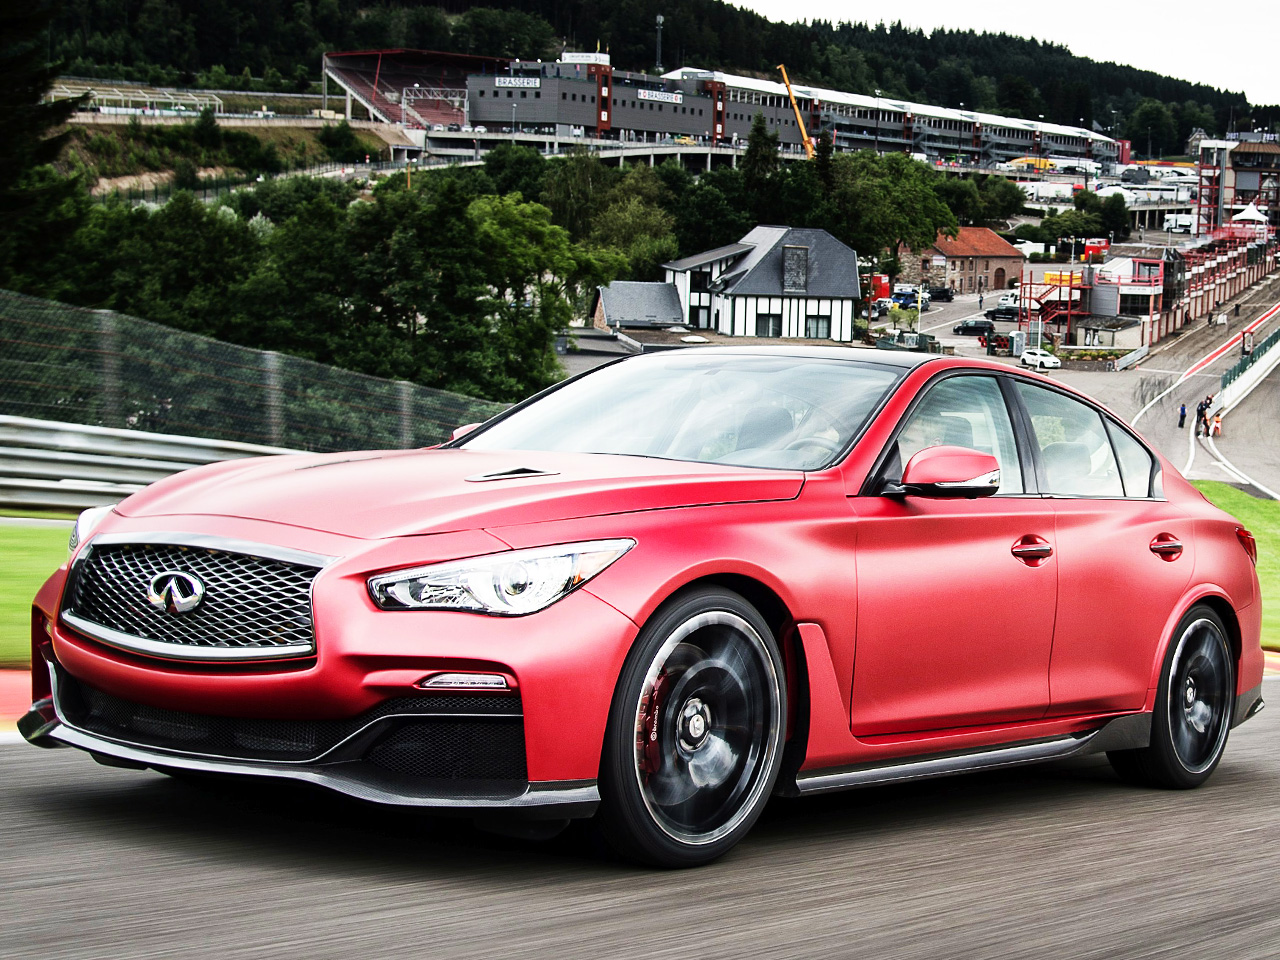 2020 Infiniti Q50 Coupe Eau Rouge Specs and Review